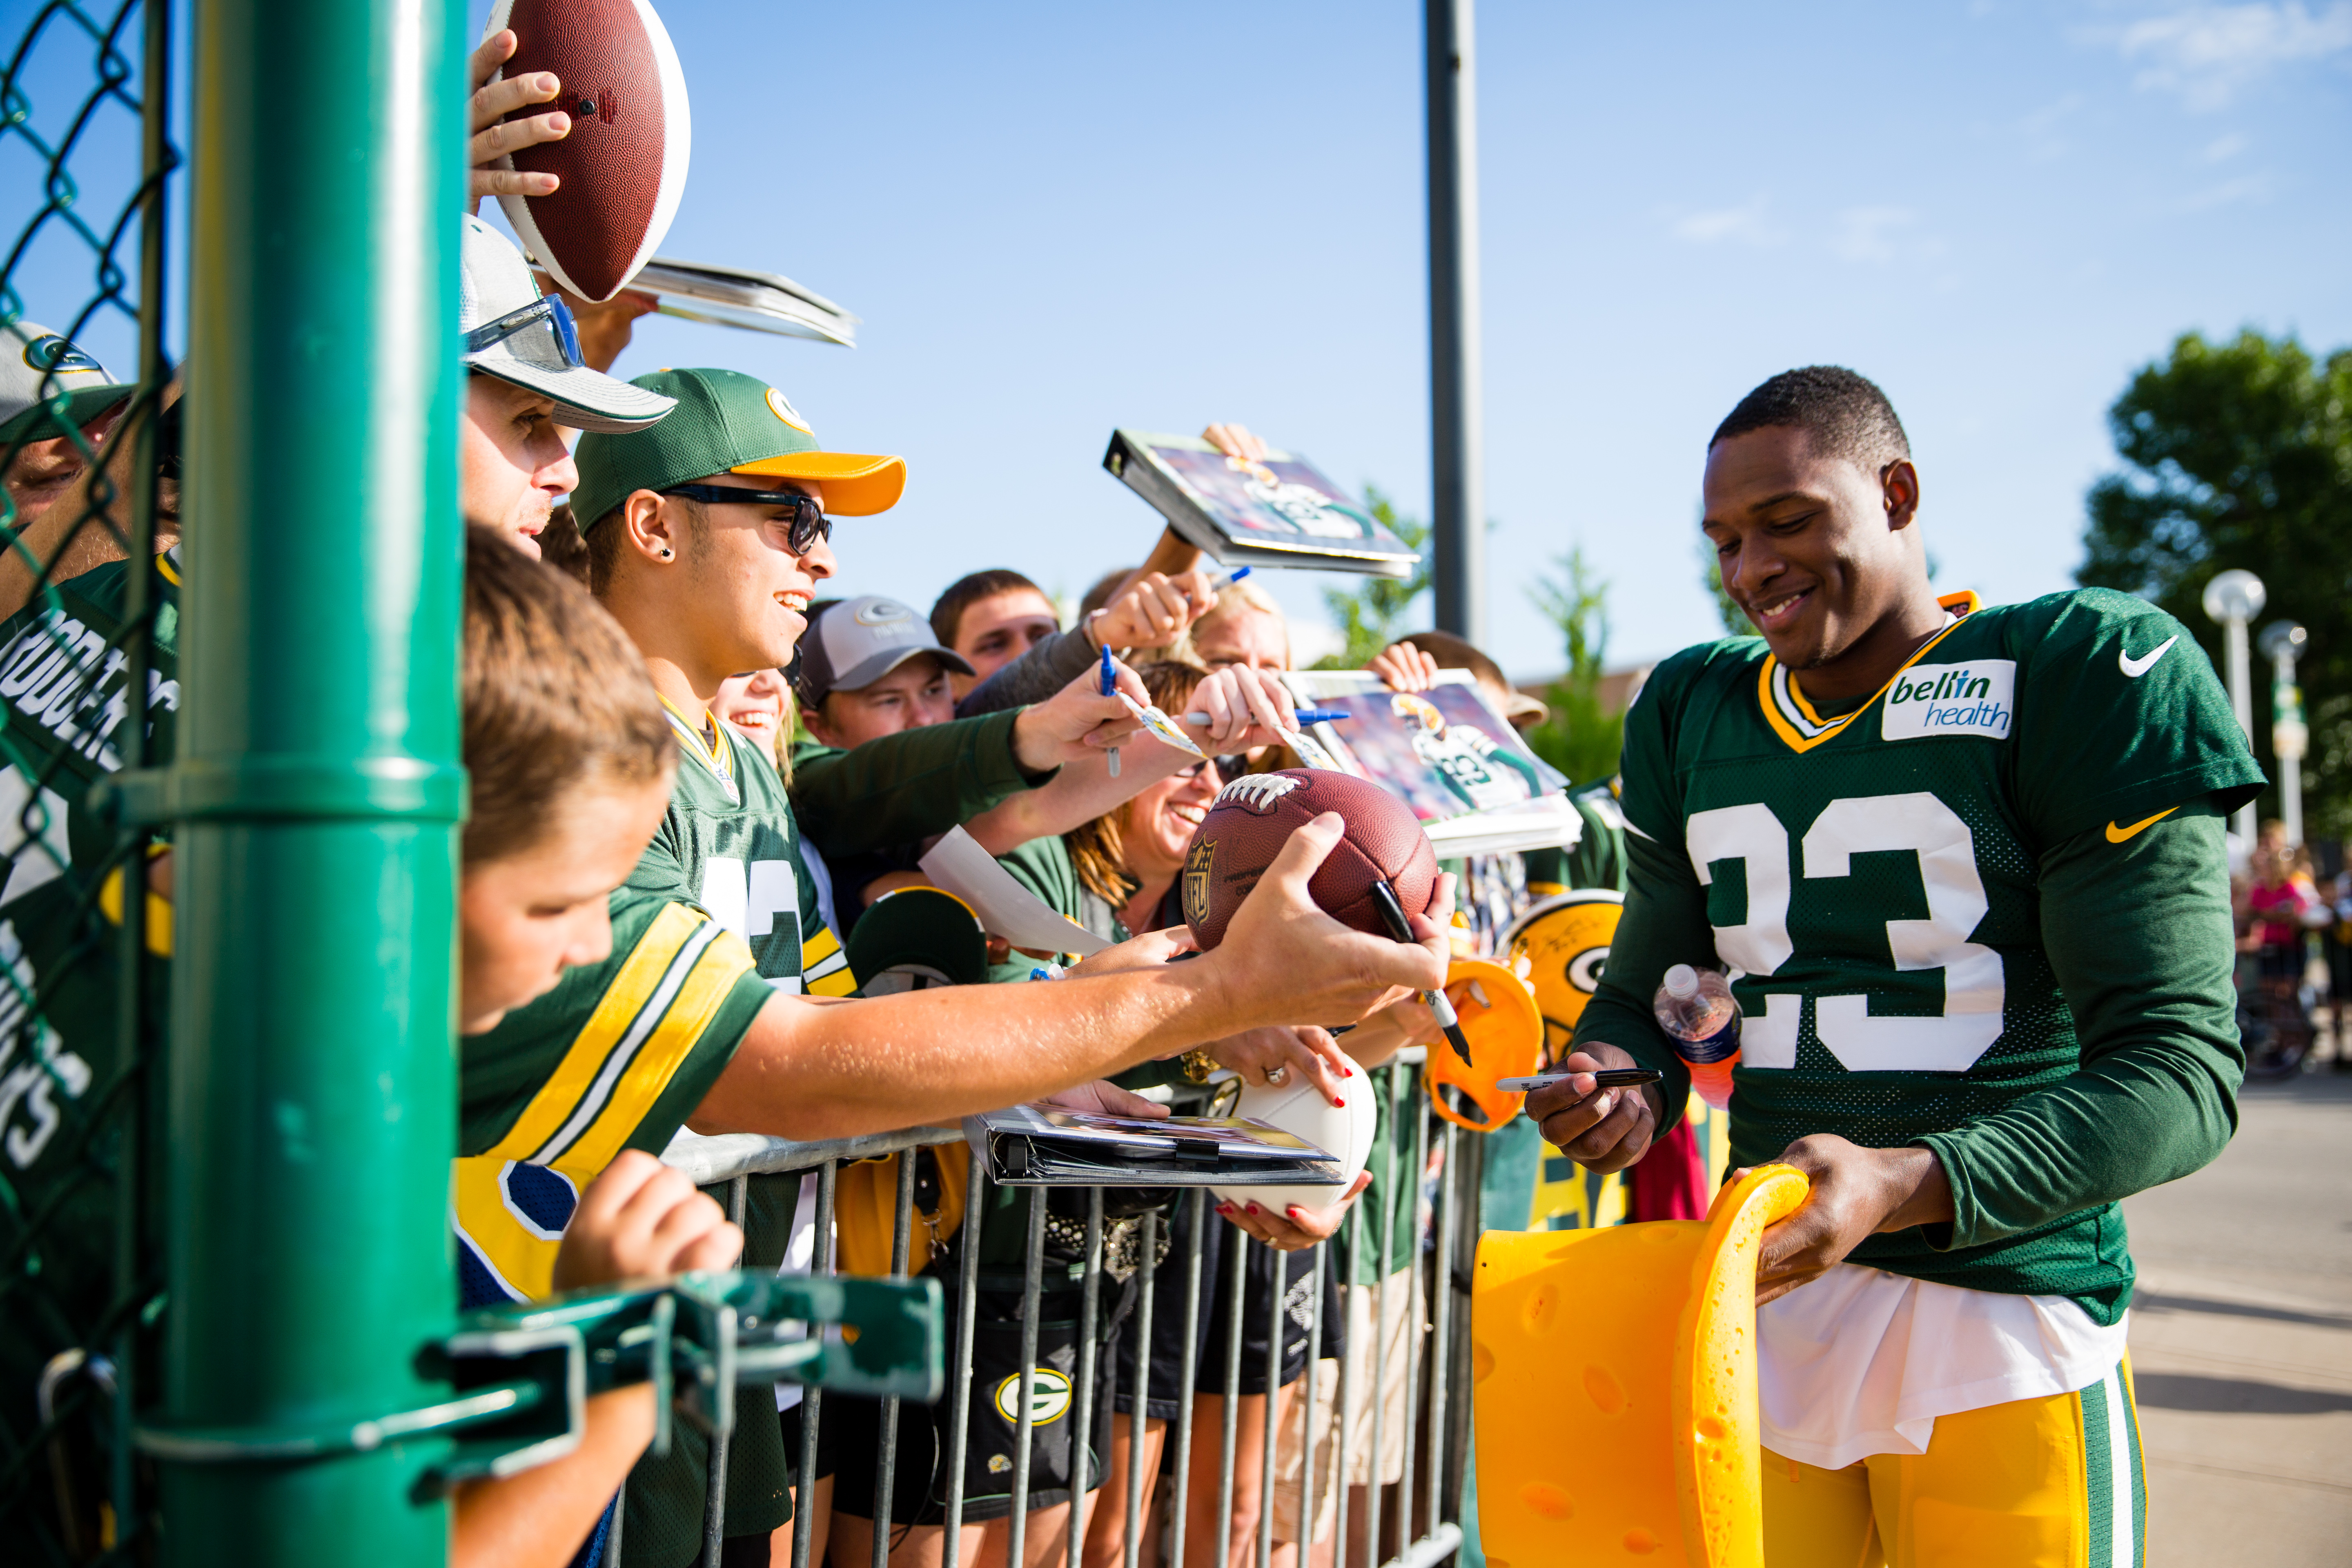 during the American Family Insurance Dream Drive outside of Lambeau Field in Green Bay, WI on July 30, 2016. (Photo by Sam Maller/The Players' Tribune)